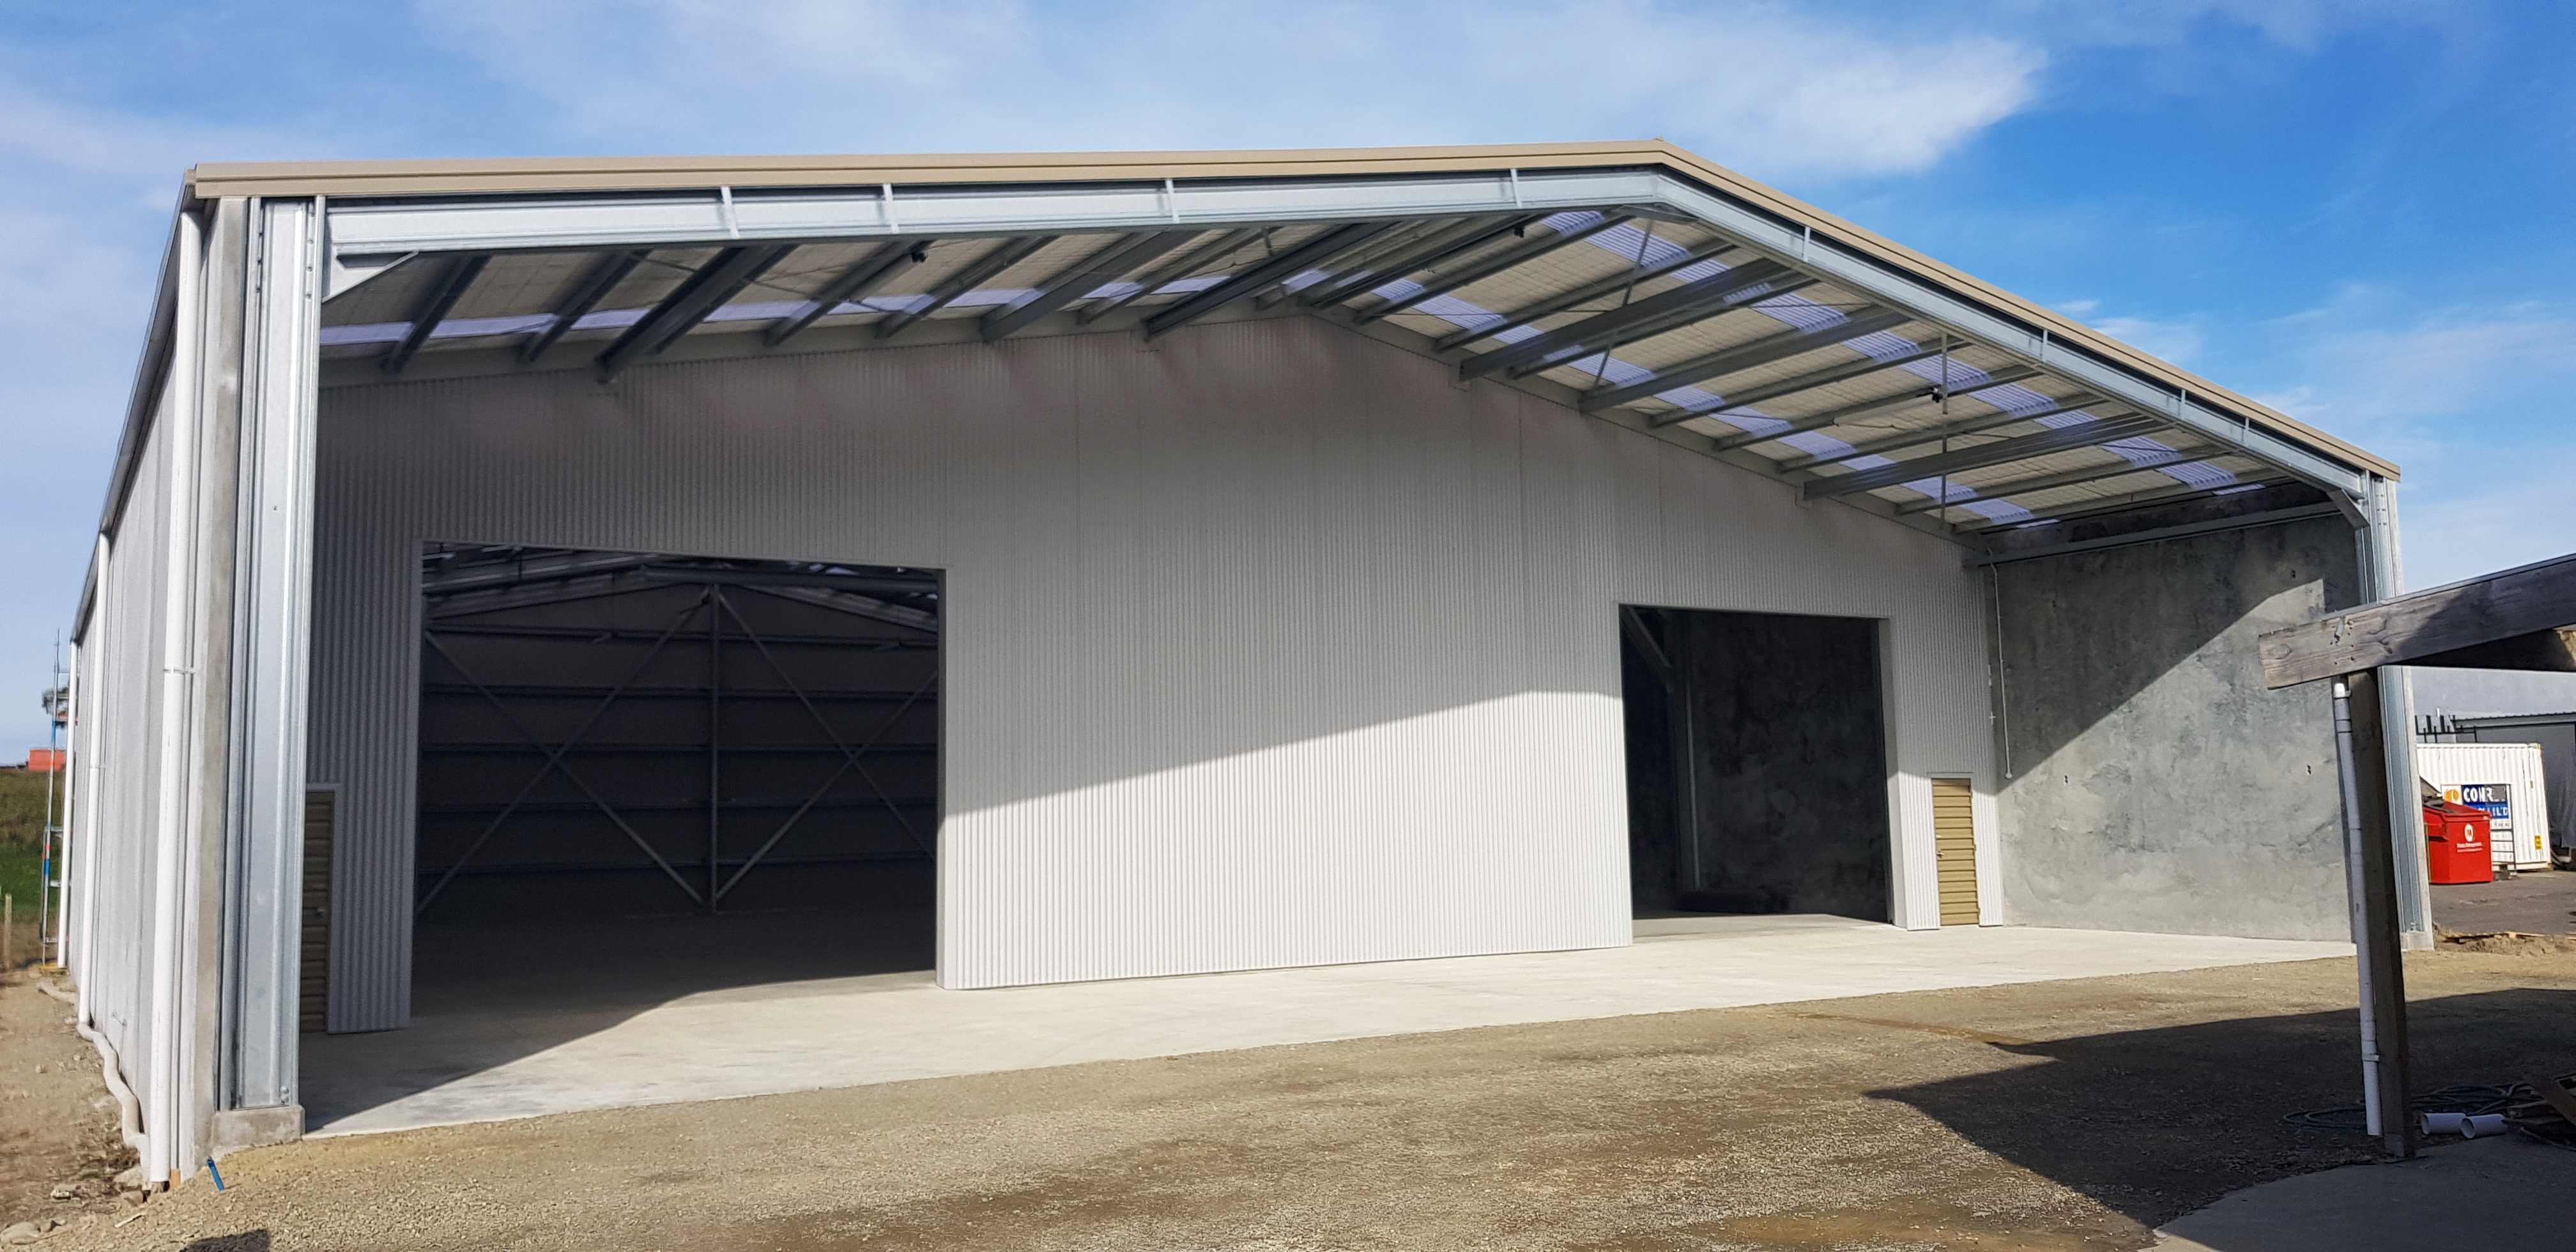 The Owners Of This Smart Looking Storage Warehouse In Timaru Are